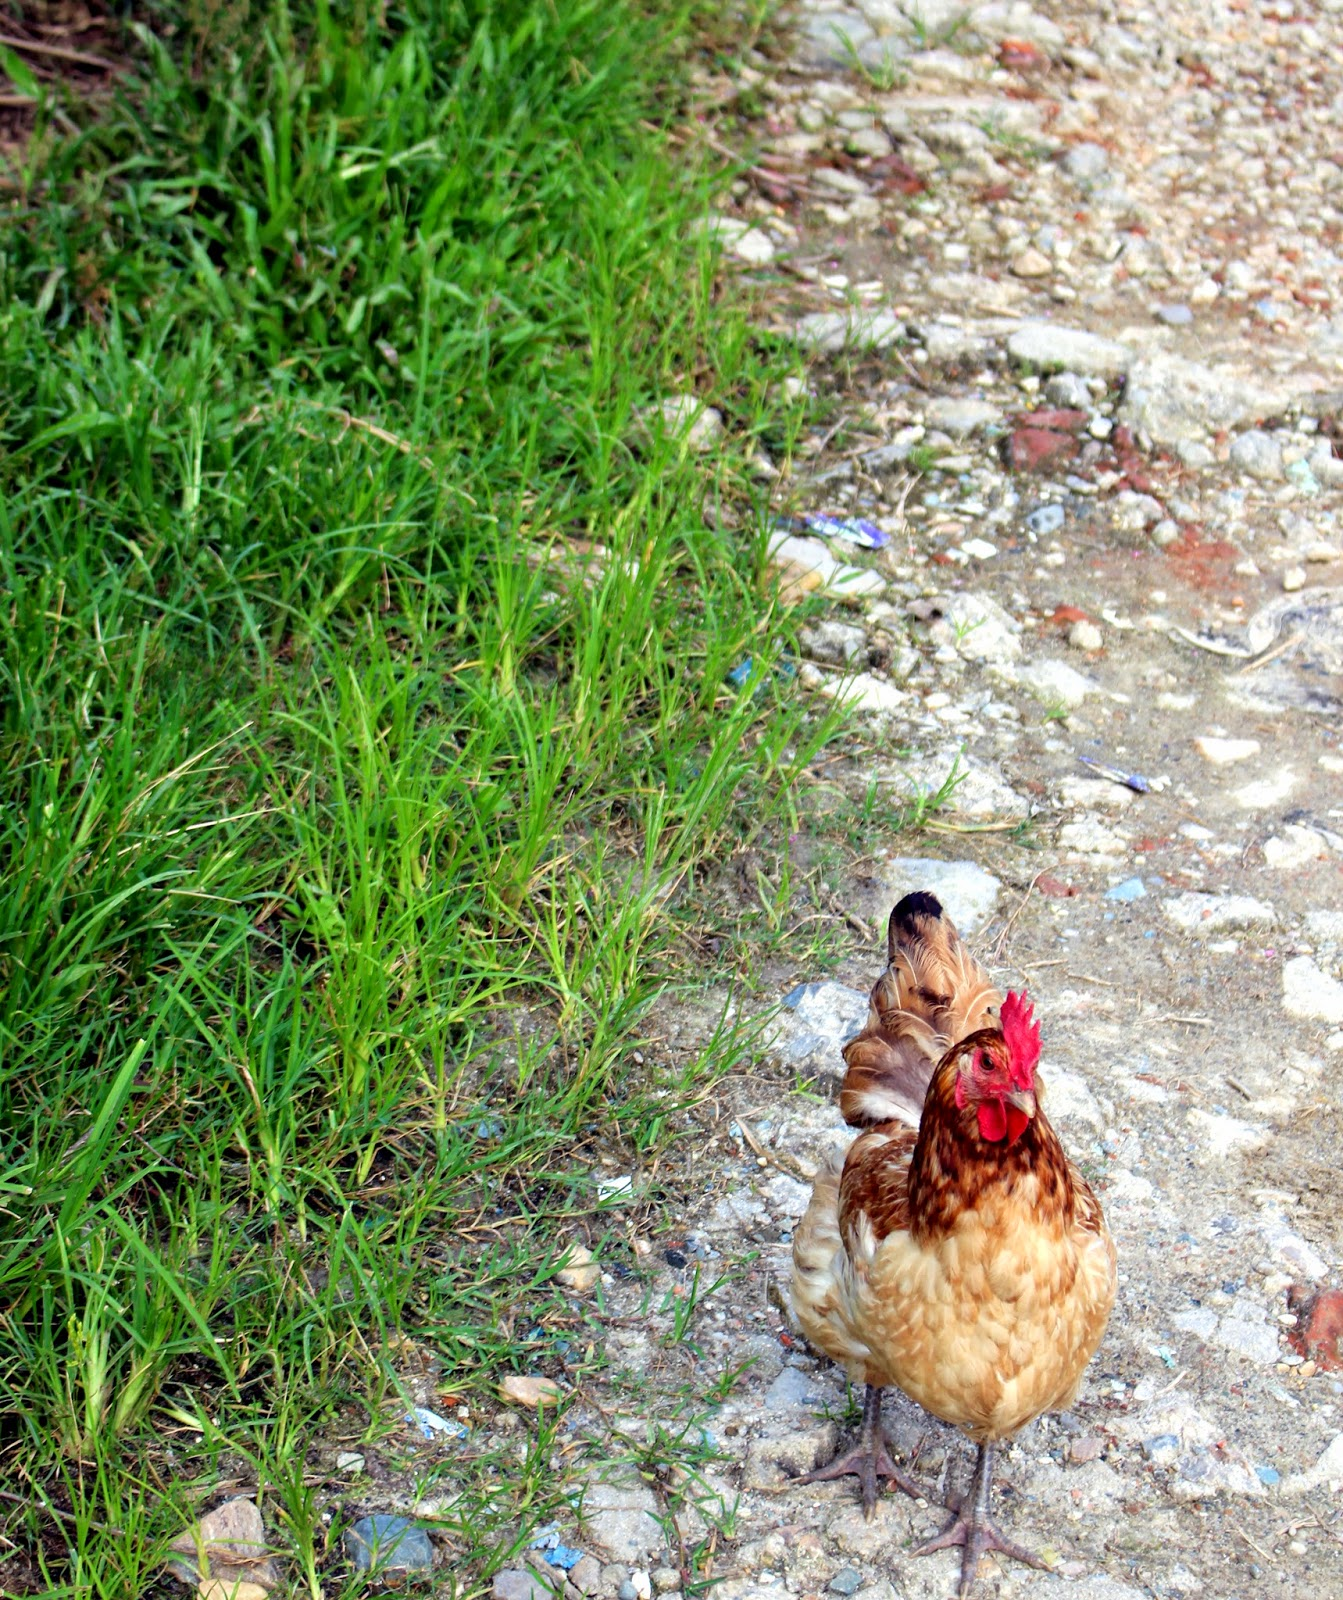 Nepal, chicken, nature